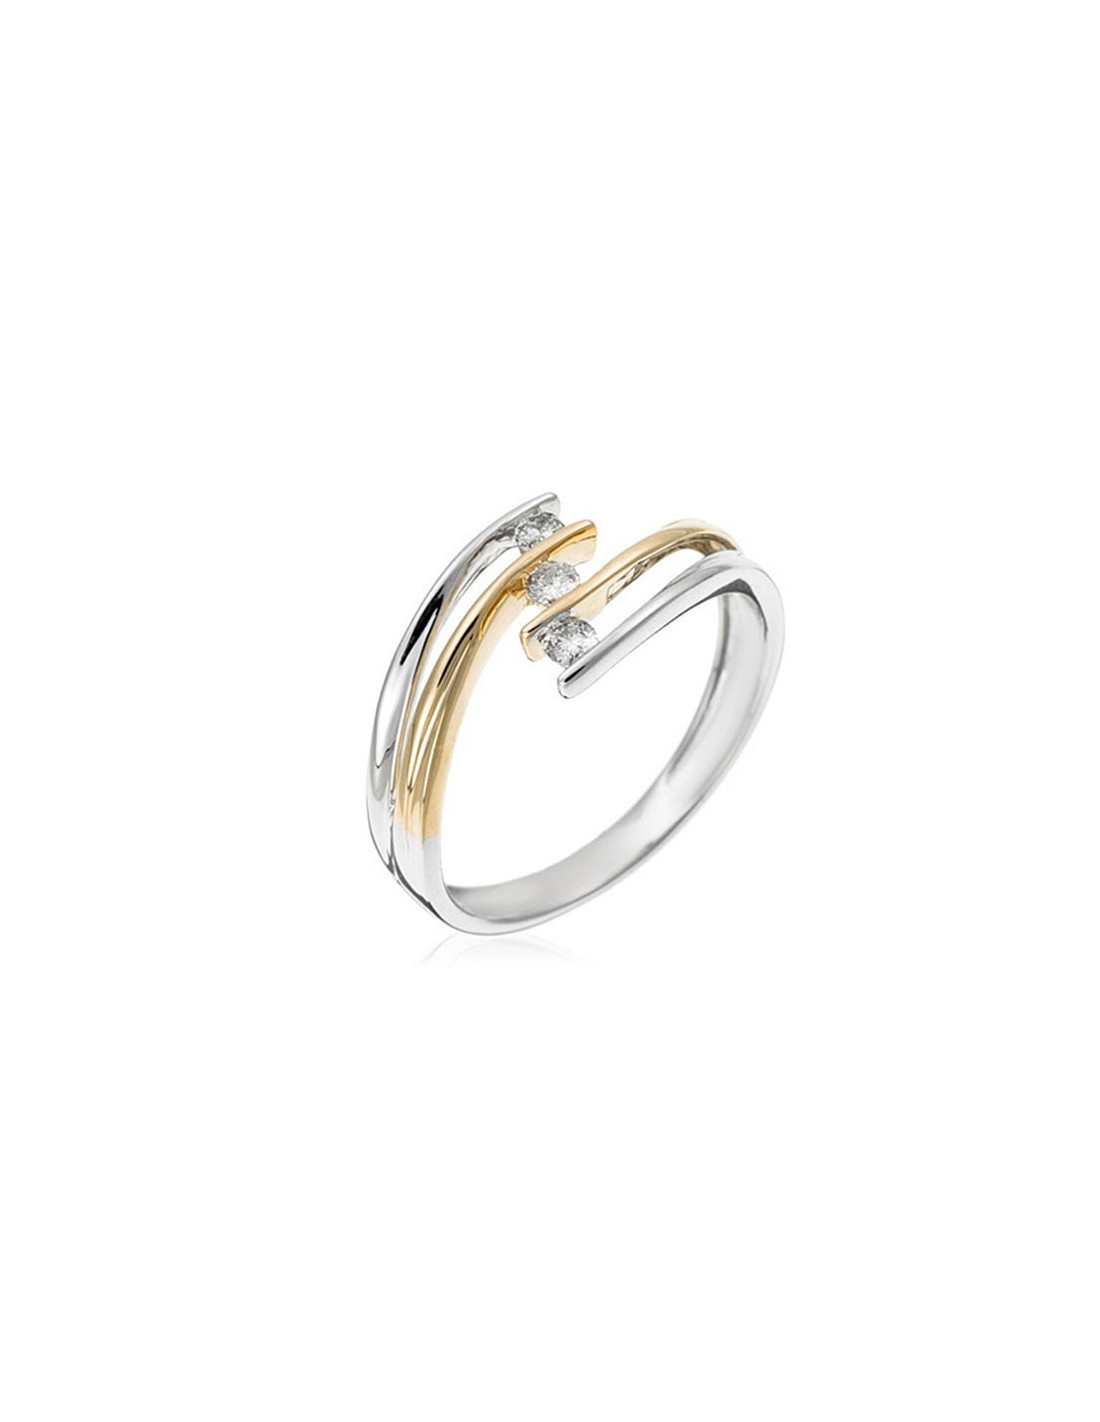 39e5db48d4074 Bague Belle Alliance Tour Complet Or Blanc et Diamant 0,16ct